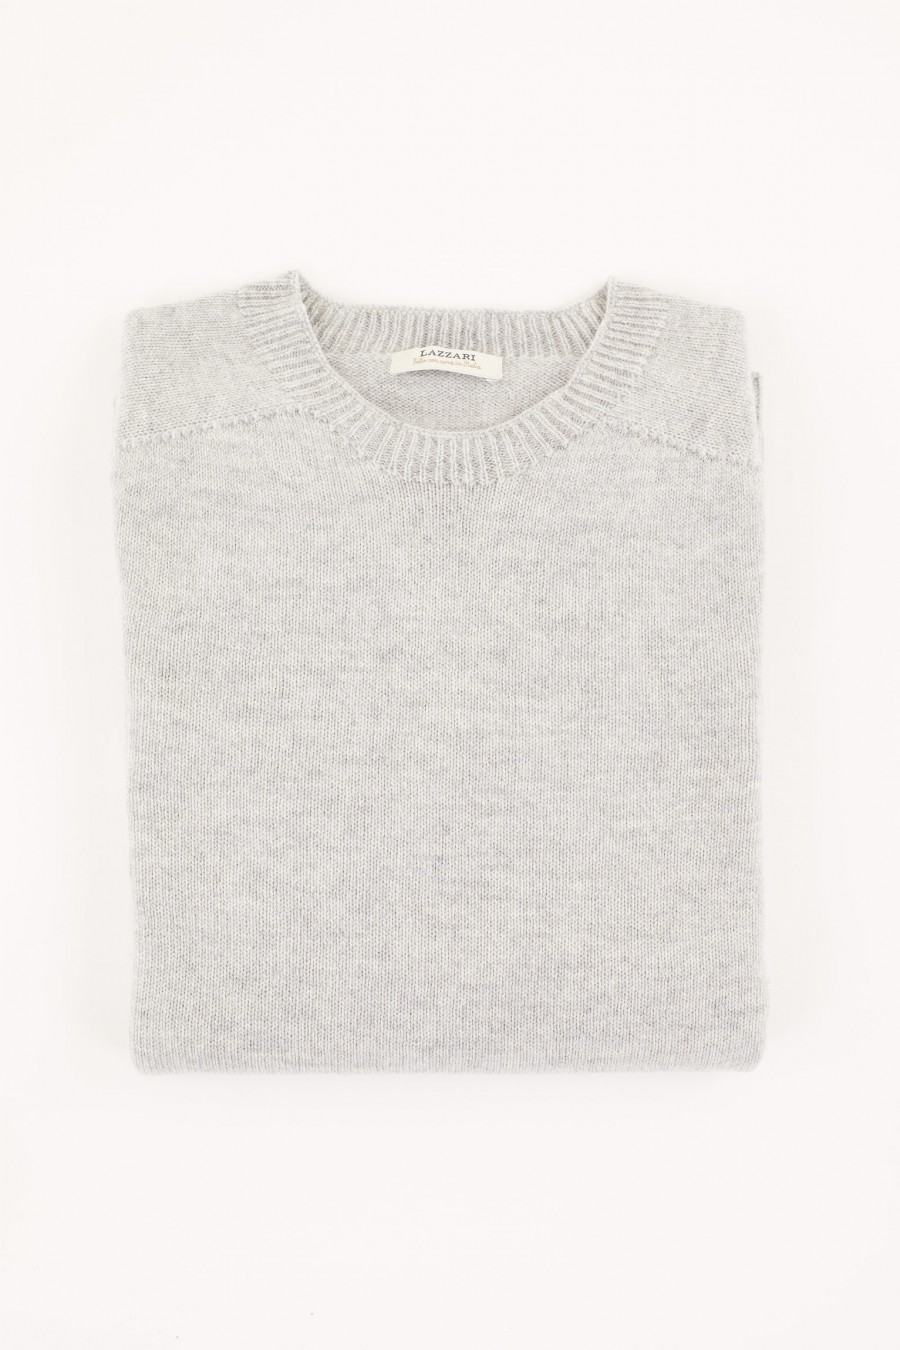 wool jumper made in italy